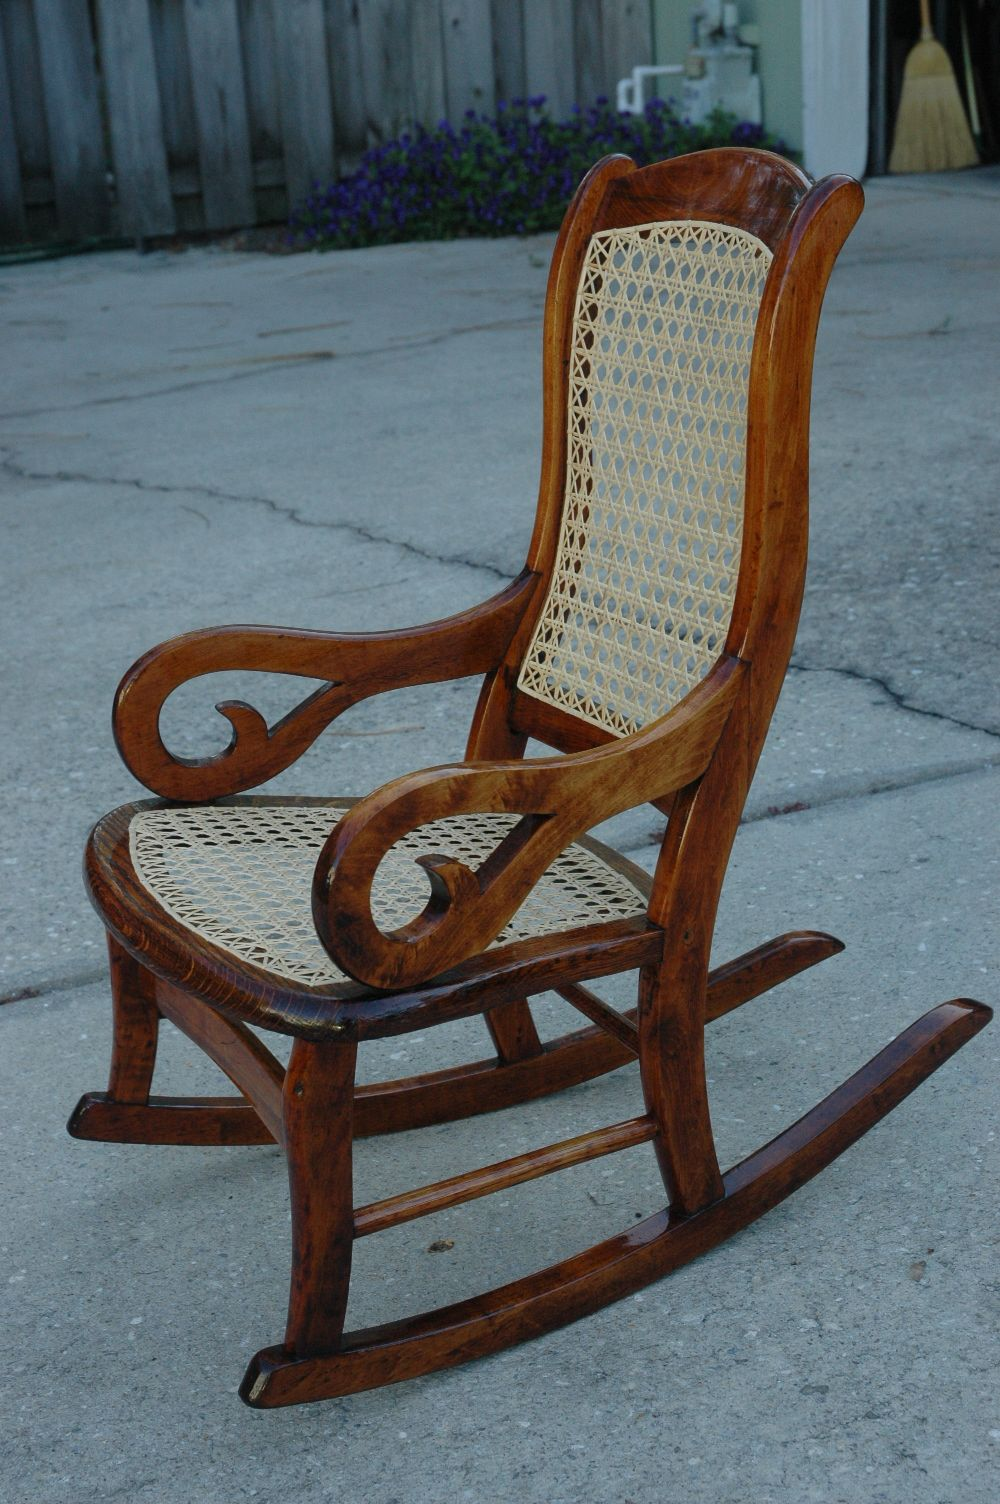 lincoln rocker how to cane a chair bottom and back. i would call